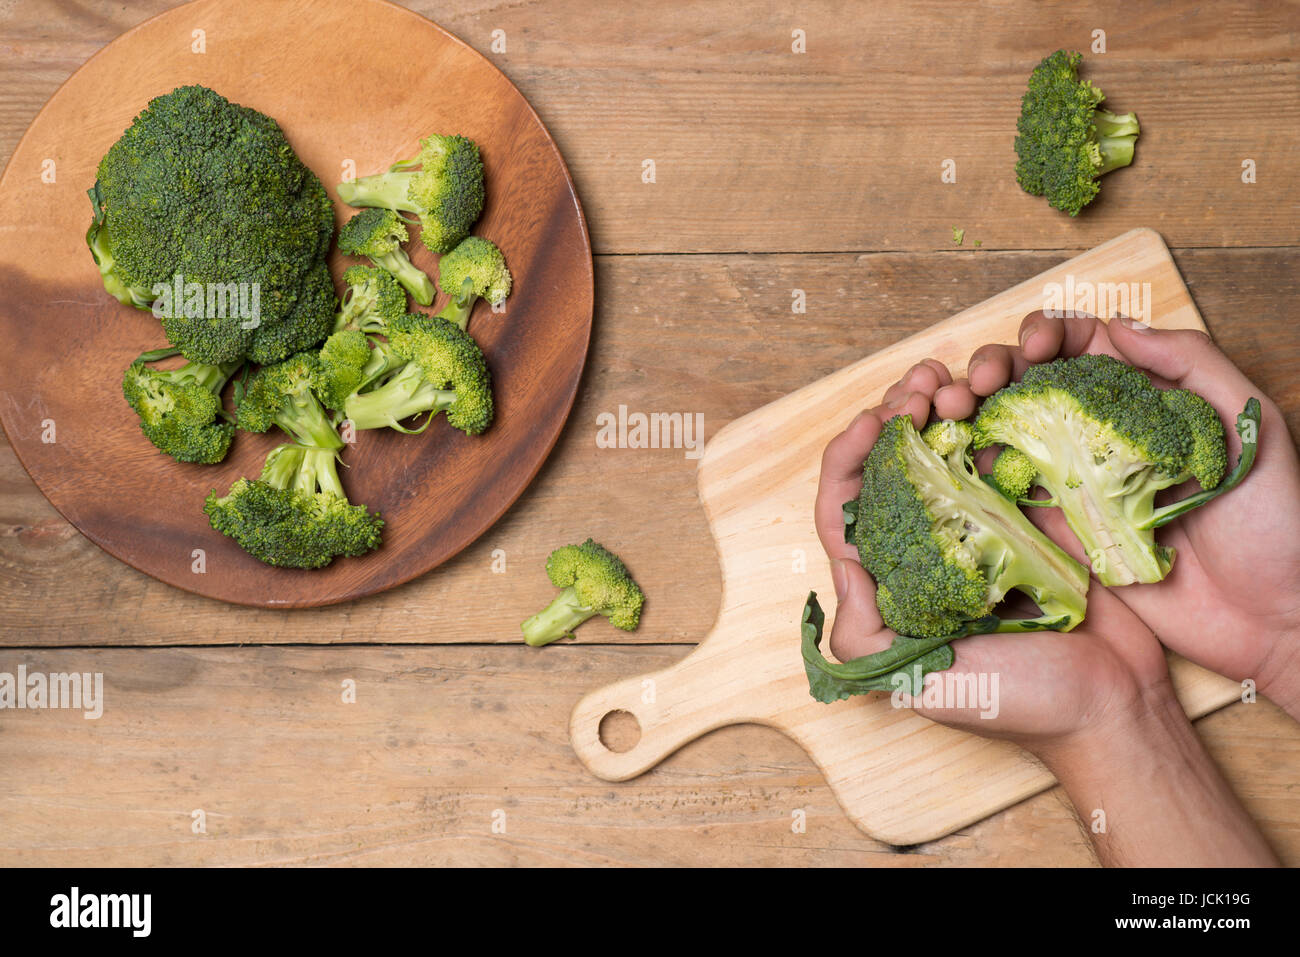 Top view of Chef hand cutting broccoli for cooking - Stock Image